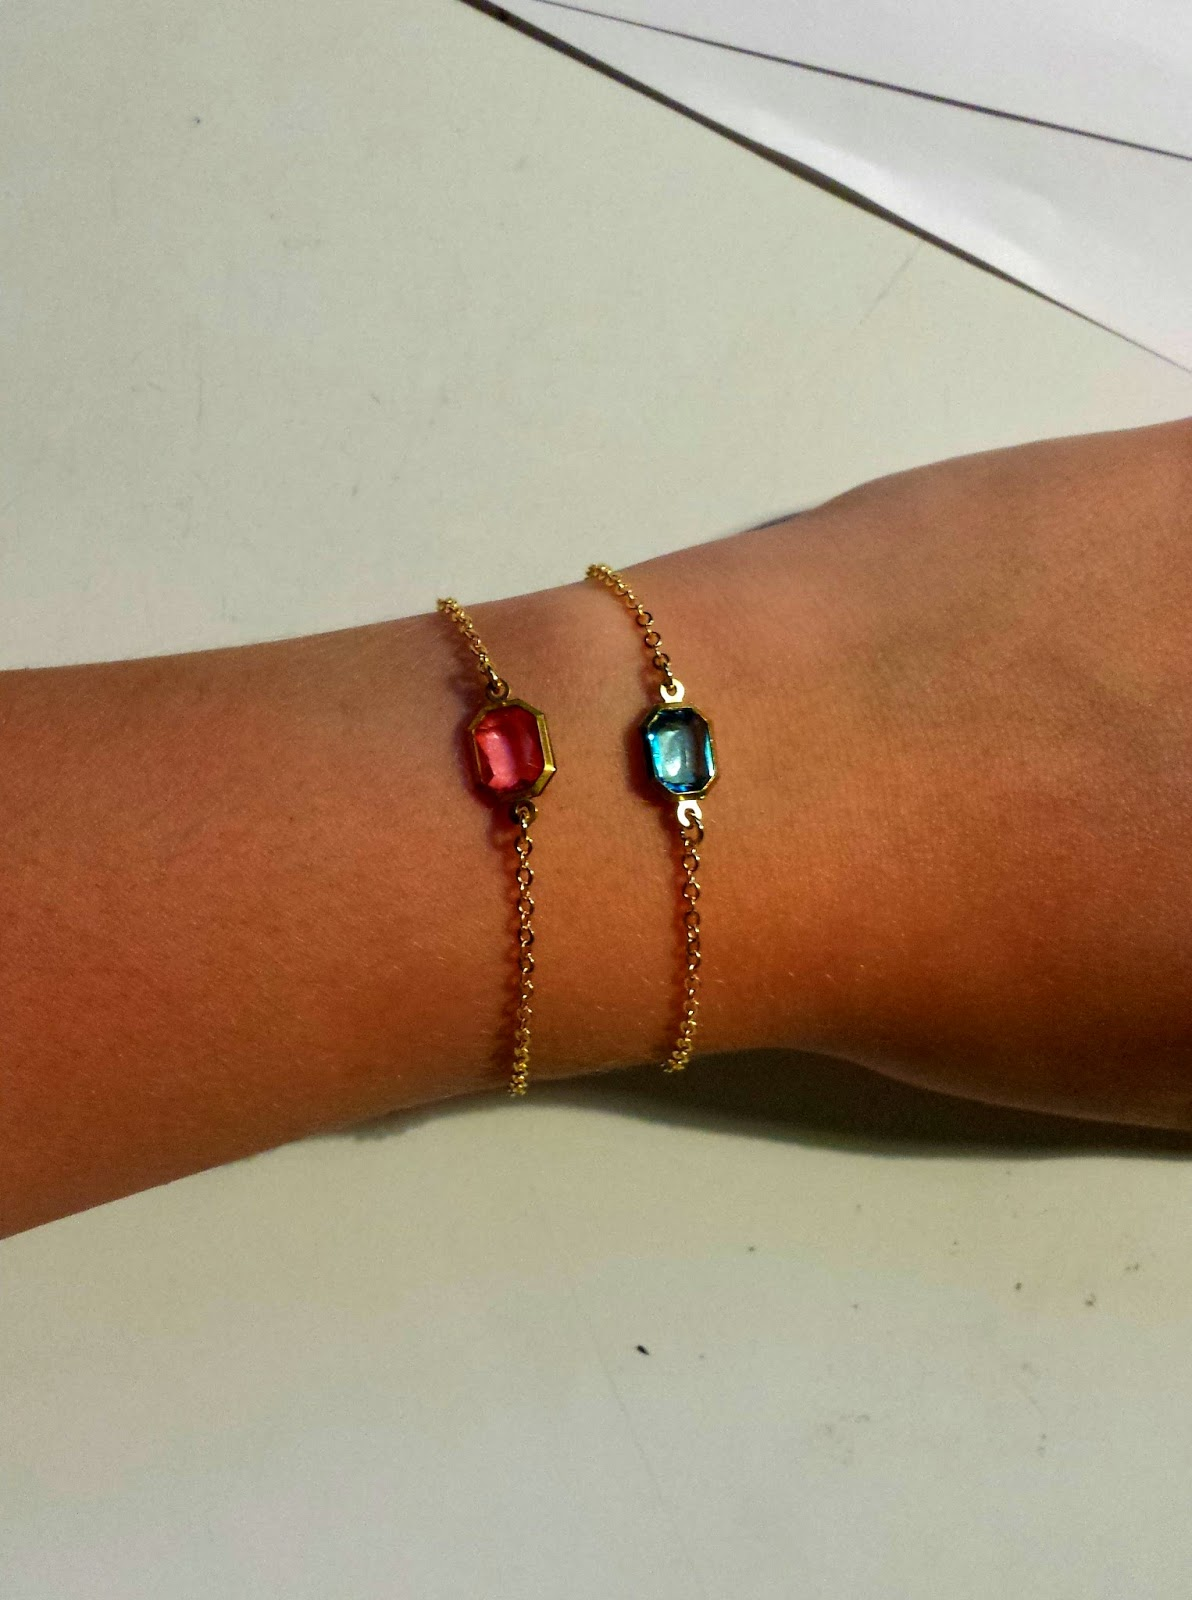 Clothes & Dreams: Self-rewarding during exams (shoplog): Armcatchers pink and blue bracelets